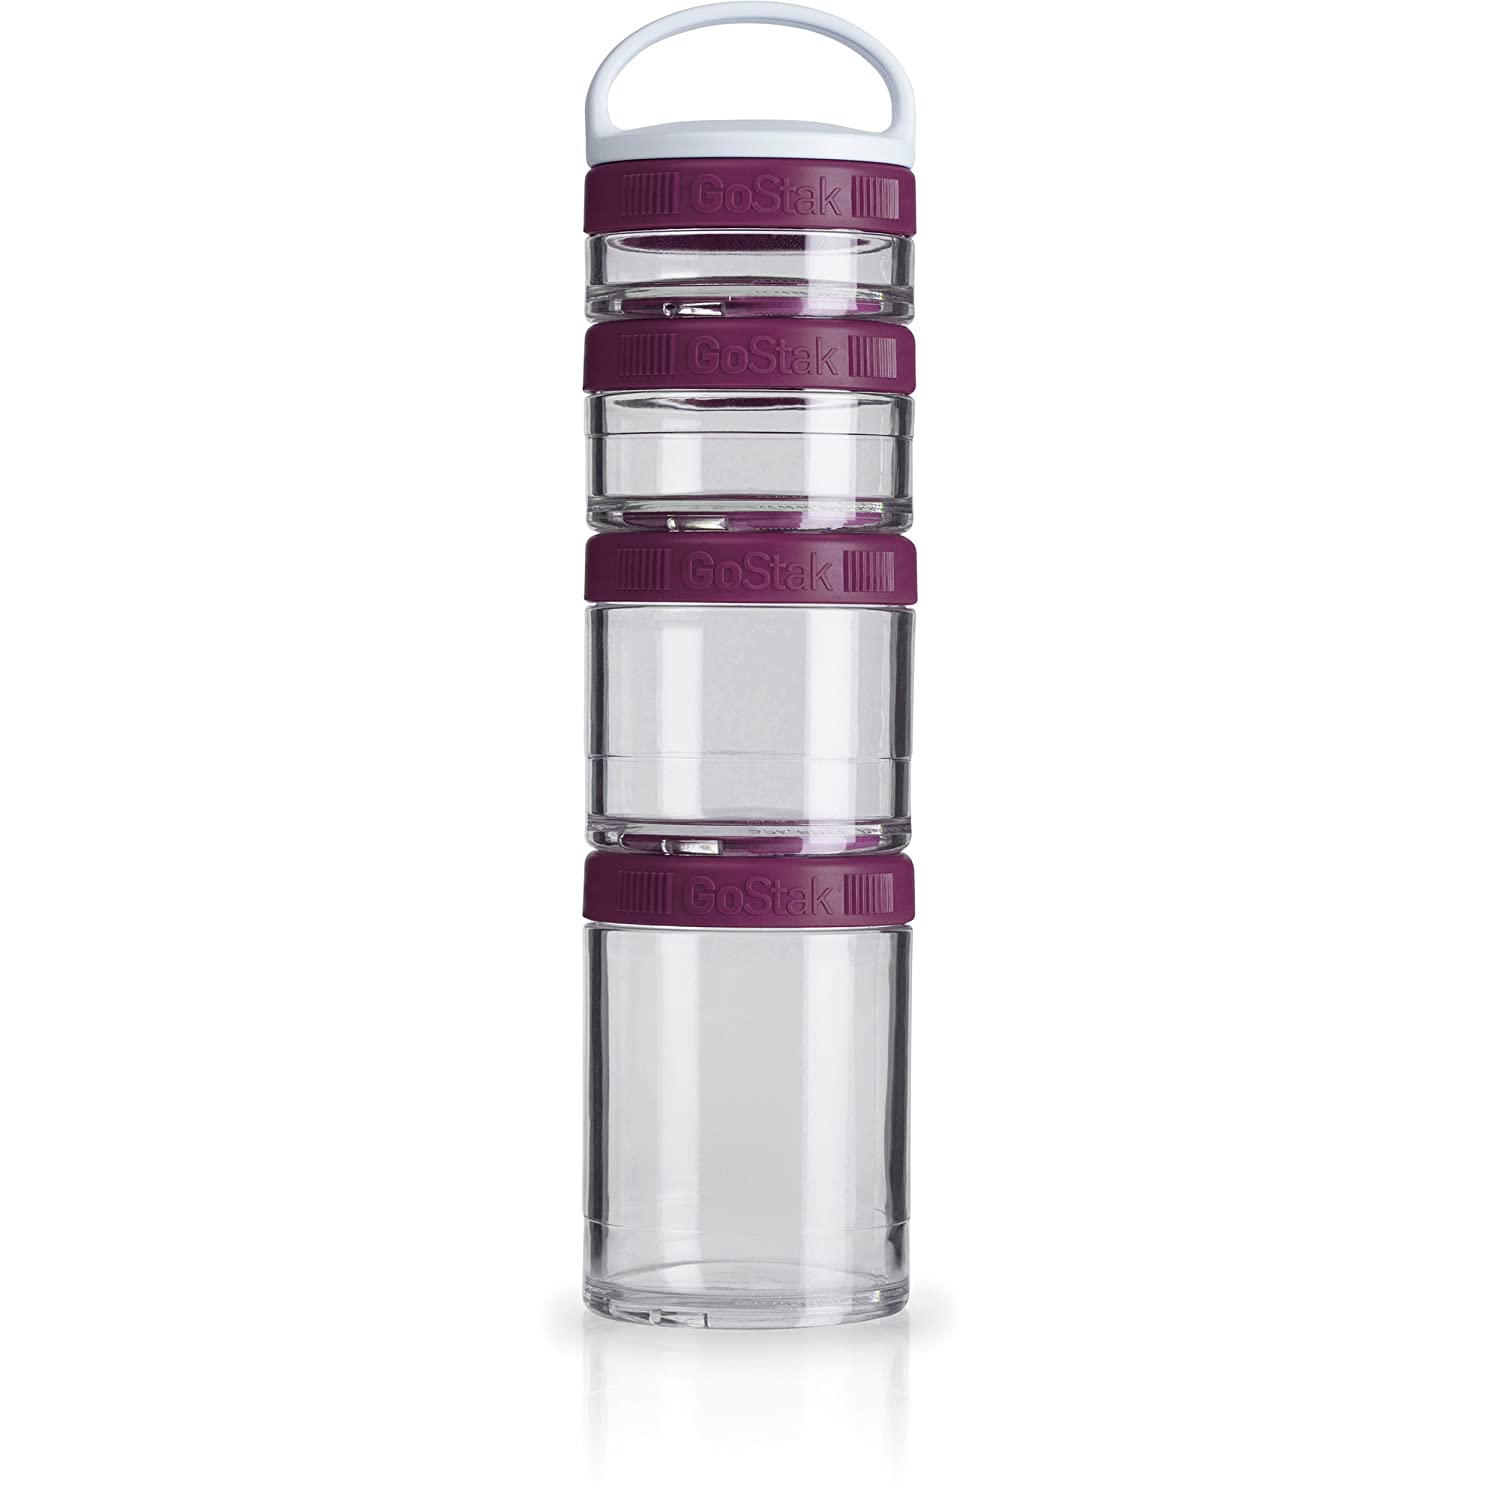 BlenderBottle C02504 GoStak Twist n' Lock Storage Jars, 4-Piece Starter Pak, Plum